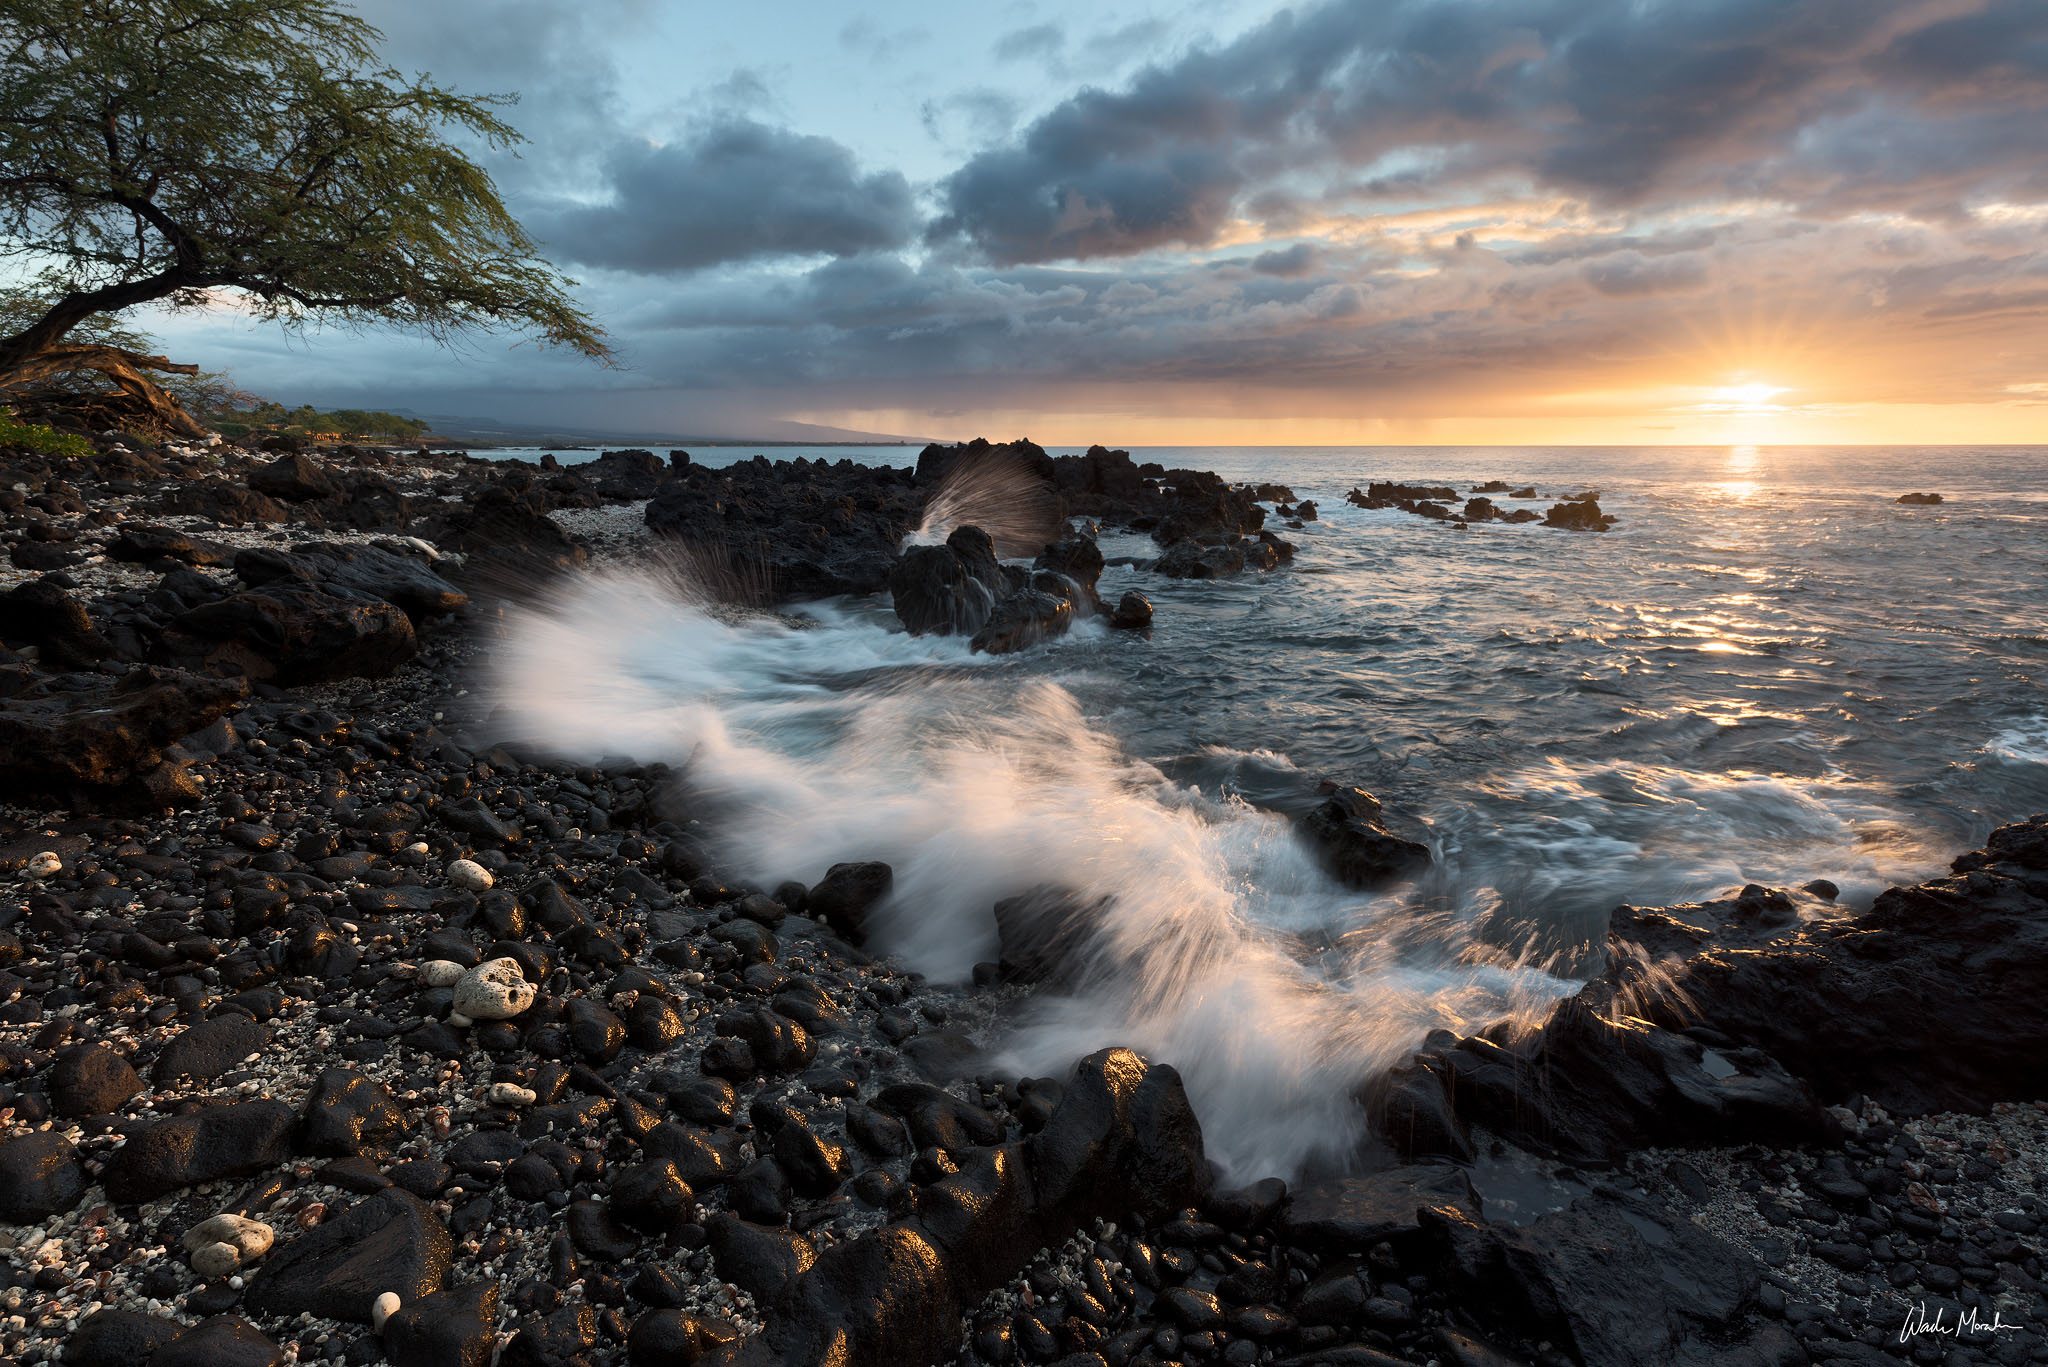 In this photo, I came across a small beach covered in smoothed out lava rocks. The sunlight glowing on the lava rocks, along...